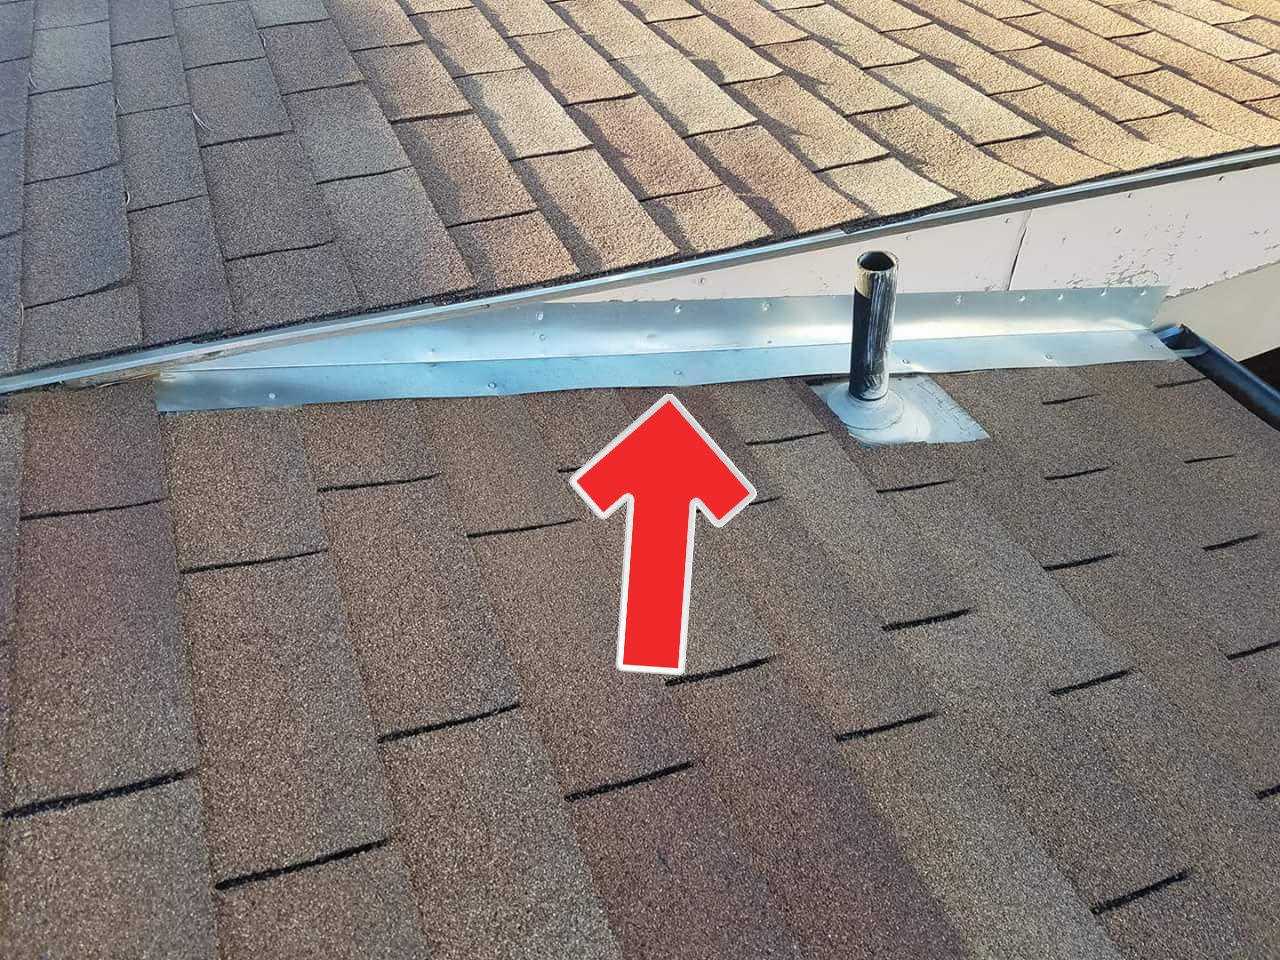 This is the worst attempt I have seen to stop a leaking roof junction. This flashing is serving absolutely no purpose whatsoever.